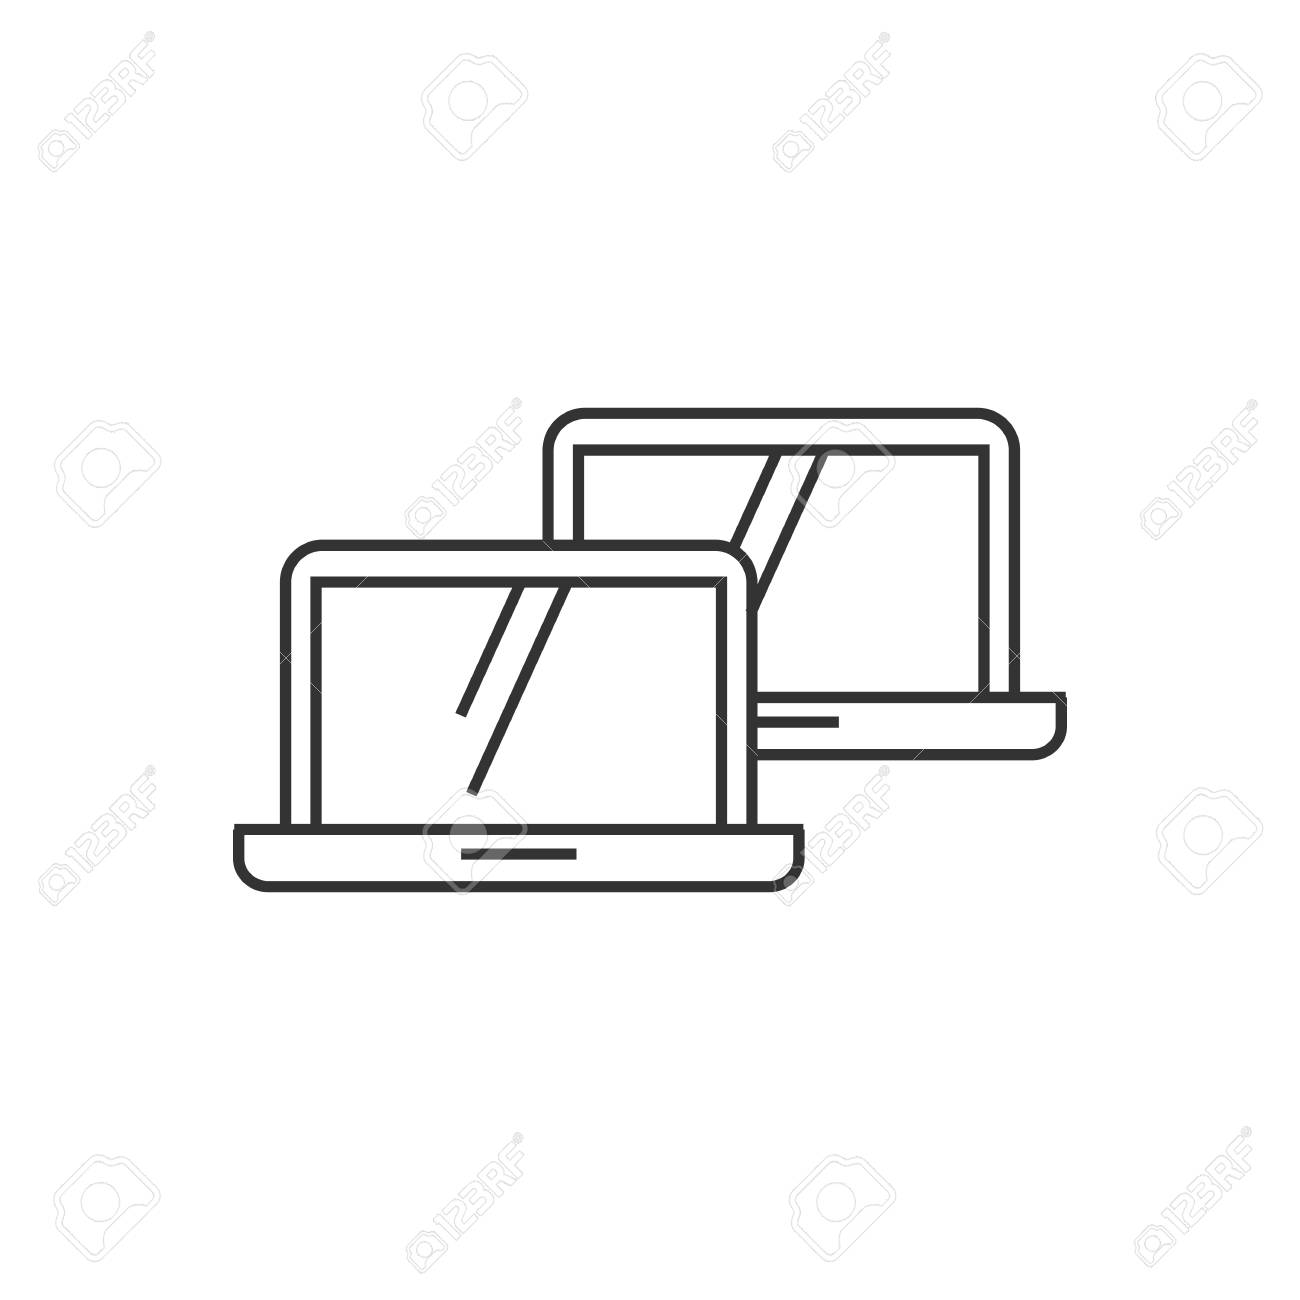 Laptops Icon In Thin Outline Style Electronic Computer Network Connection Diagram Internet Intranet Local Area Stock